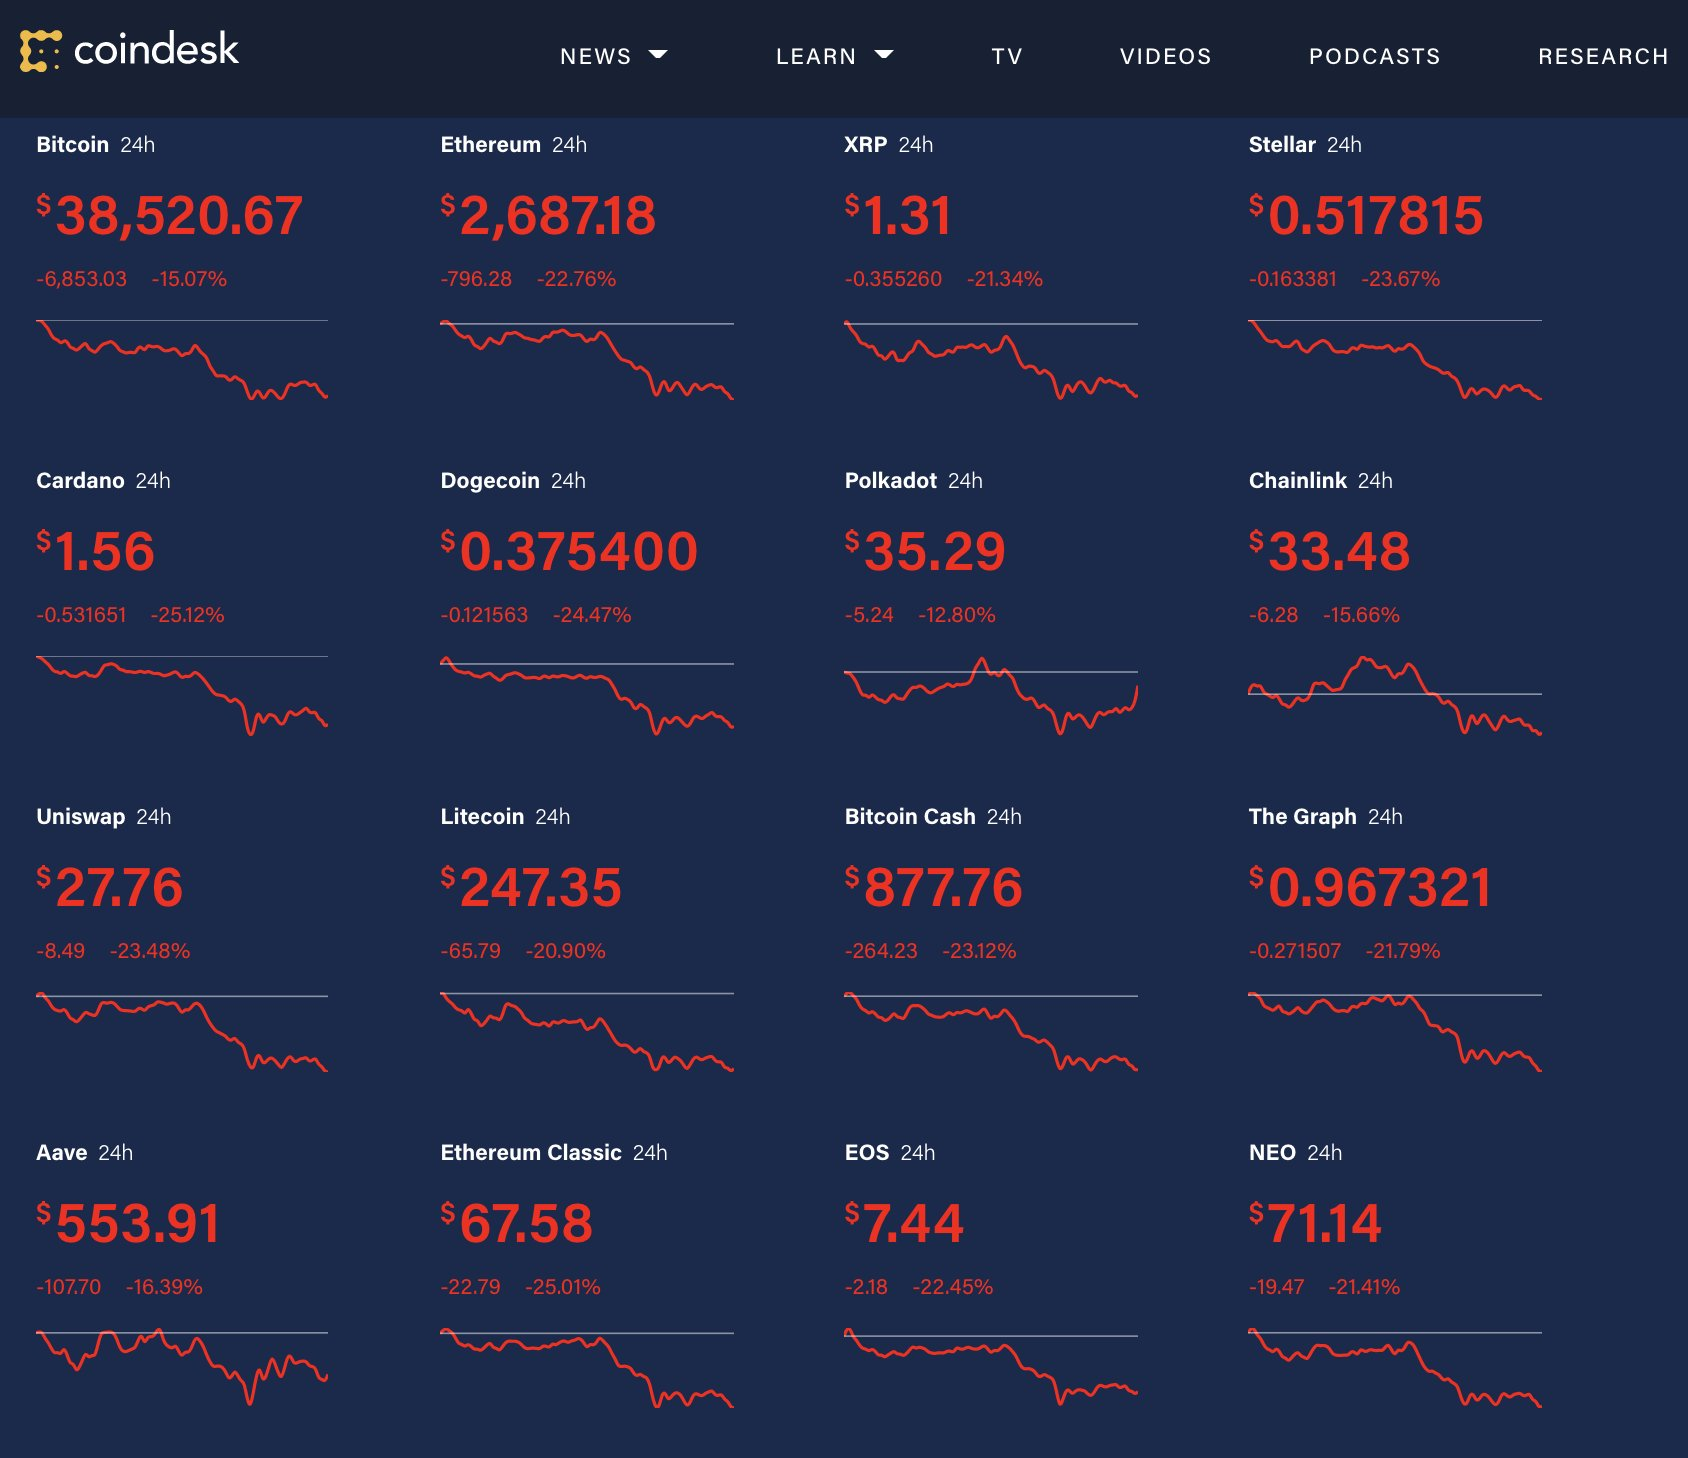 Last 24 hours have been rough on cryptocurrencies